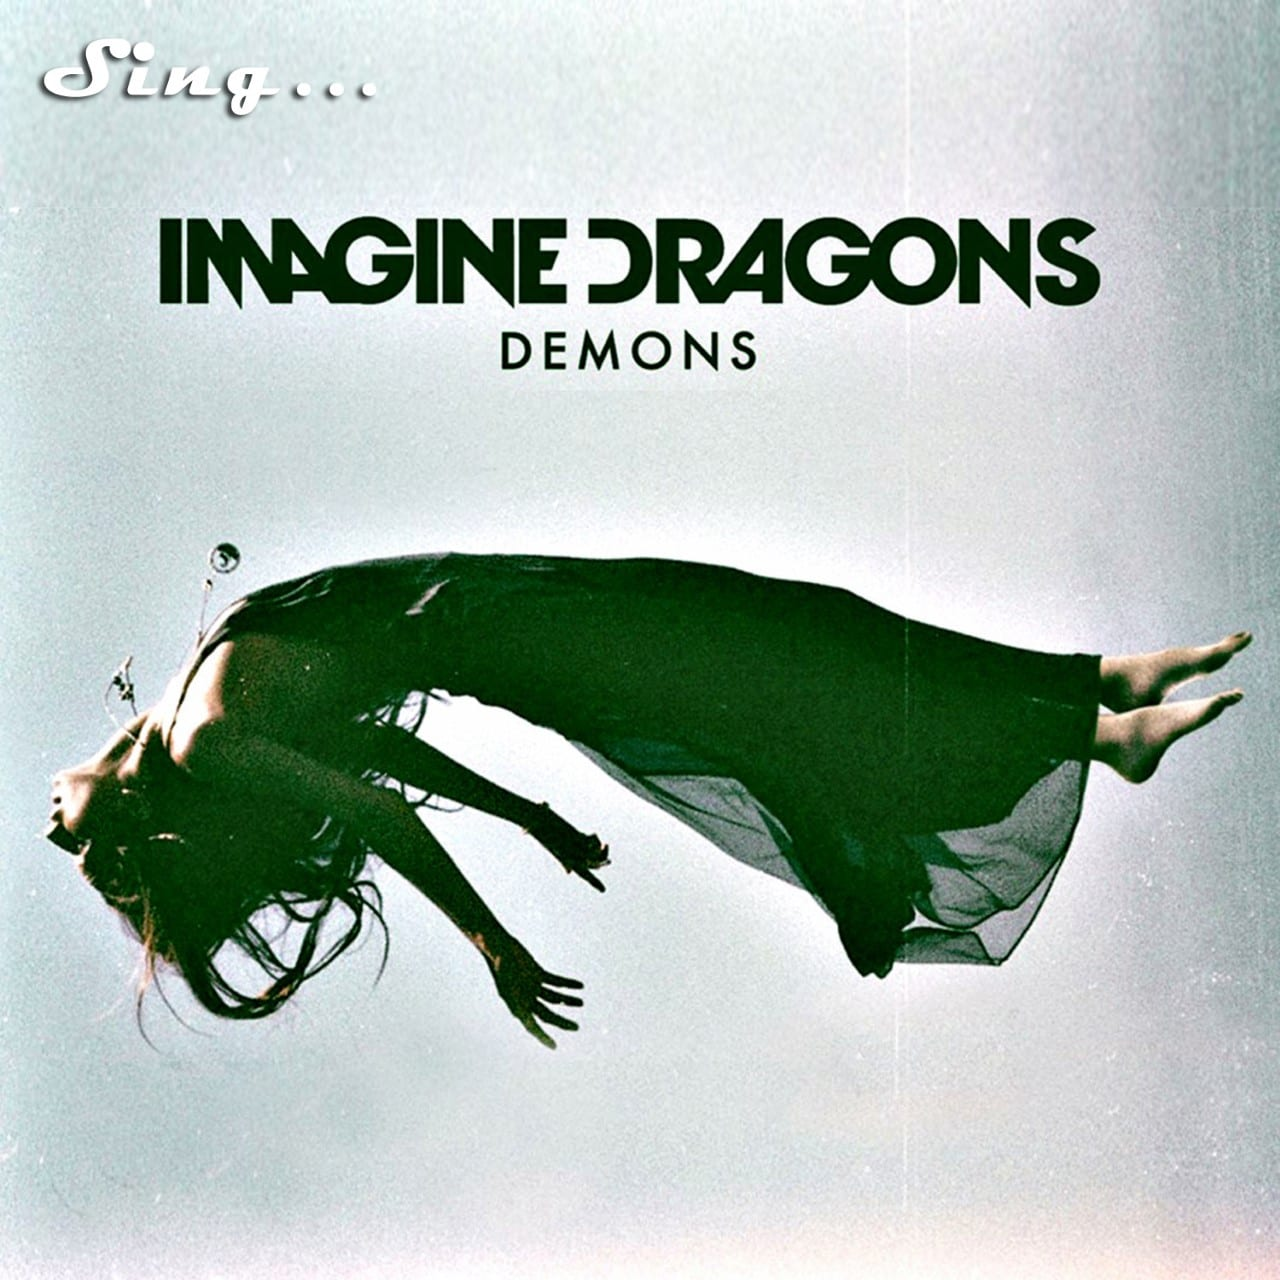 Sing… Imagine Dragons! Drop In Rock Choir In North Van! at the Presentation House Theatre